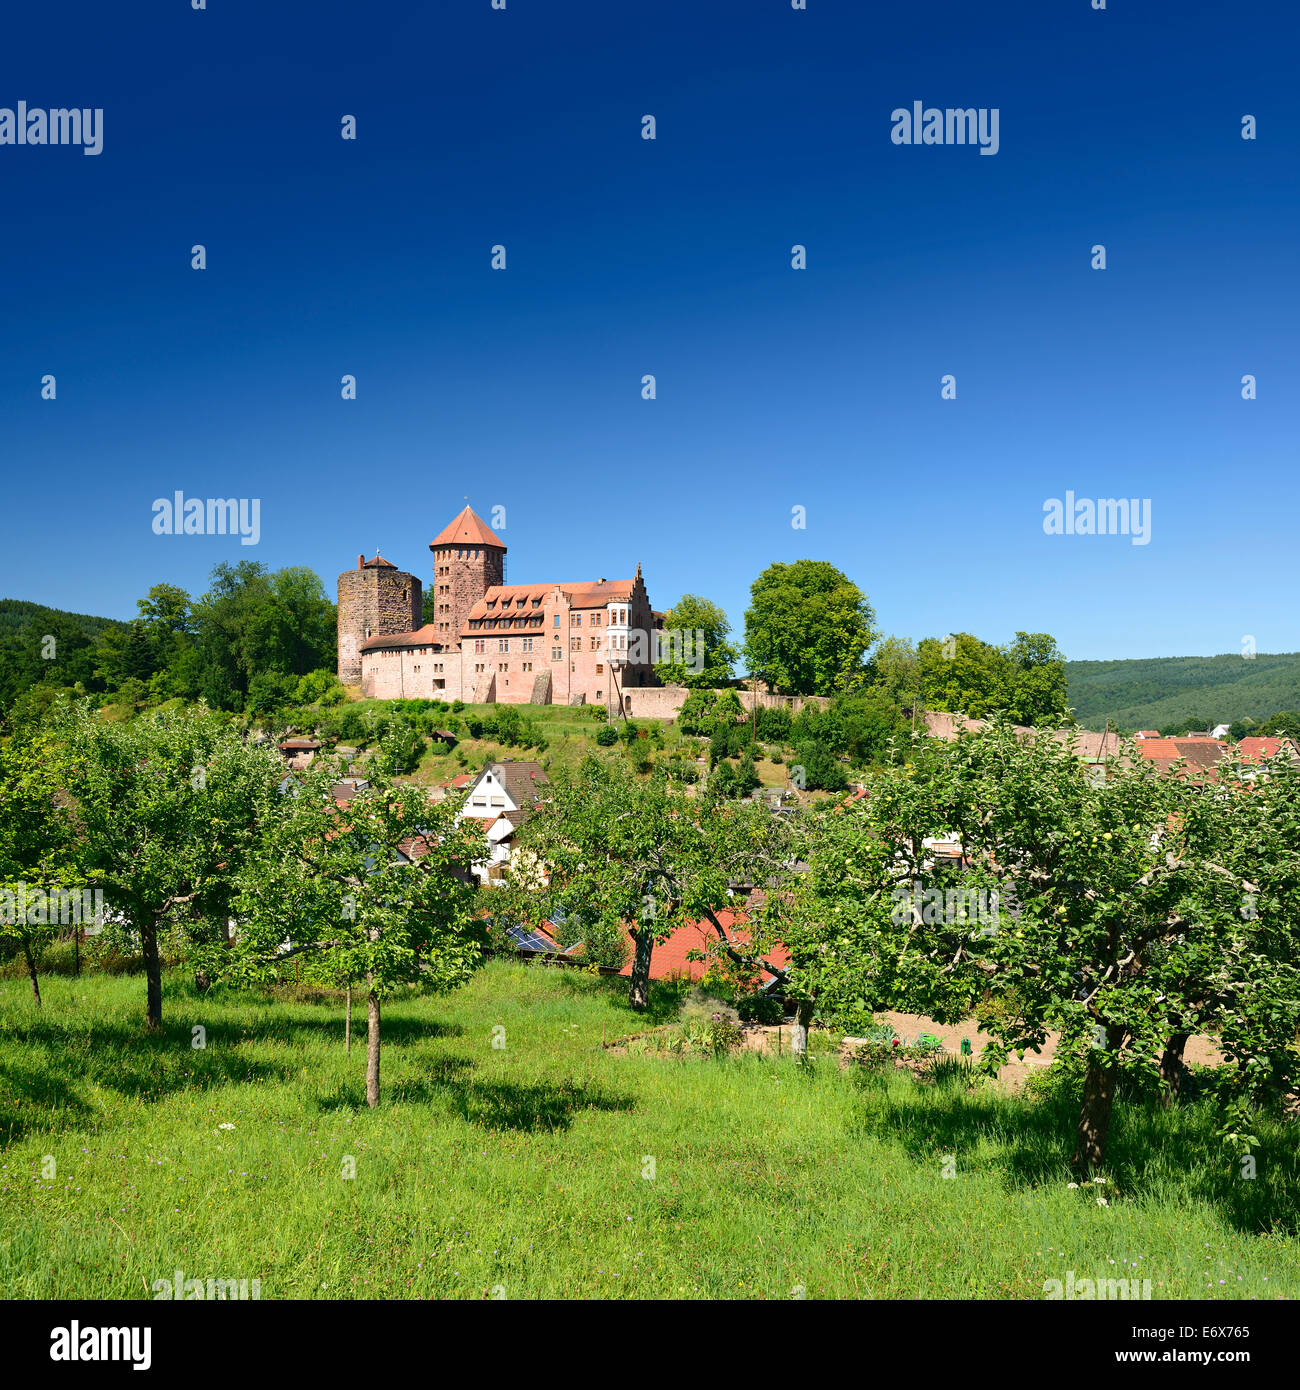 Orchard vis-à-vis Burg Rieneck Castle in Sinntal Valley, Lower Franconia, Bavaria, Germany - Stock Image